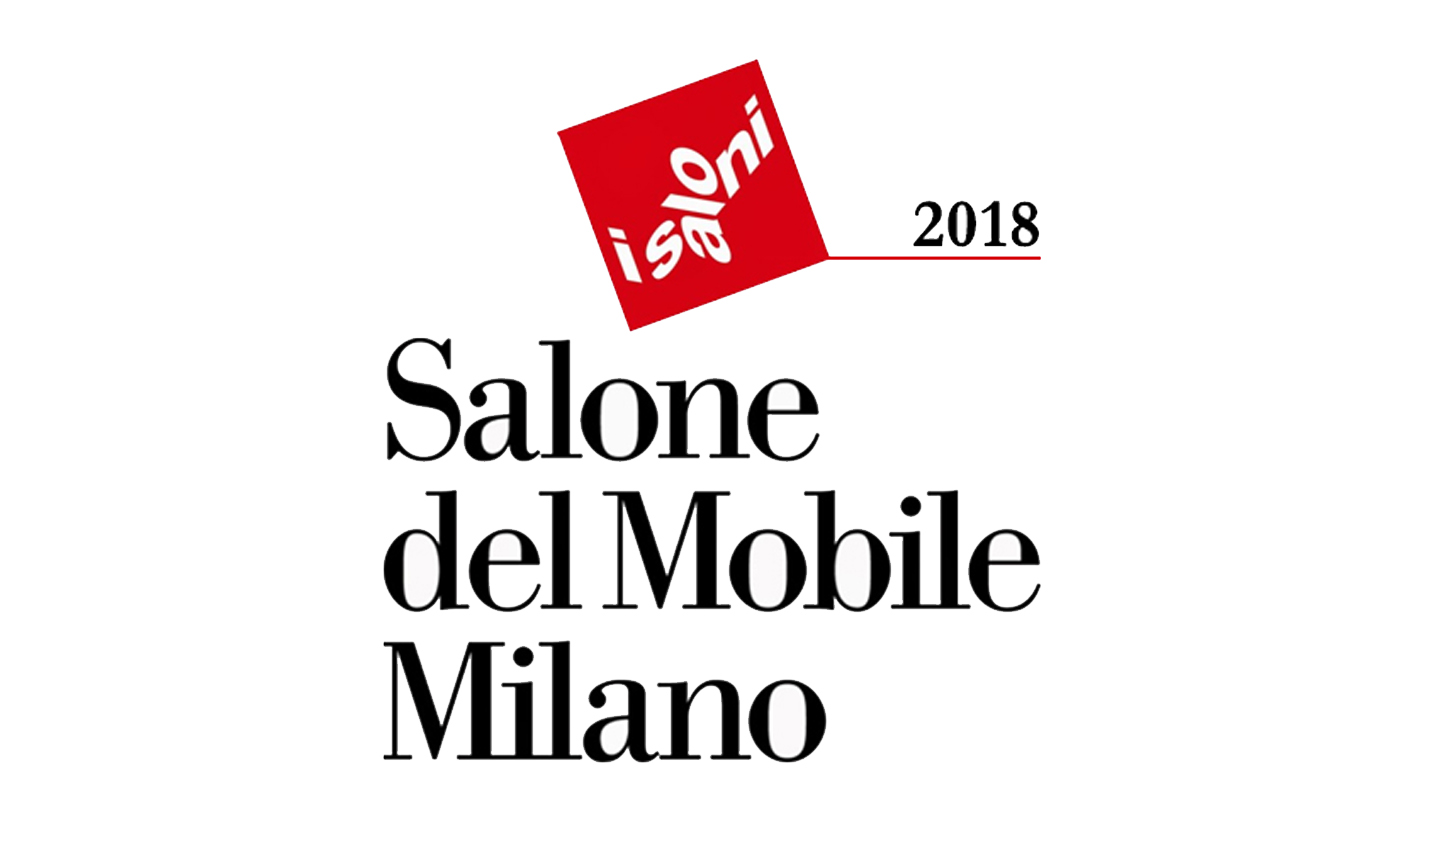 Meet The Winners of the CovetED Awards Presented at iSaloni 2018 private members' clubs in milan 5 Private Members' Clubs in Milan You'll Want to Be a Part Of Meet The Winners of the CovetED Awards Presented at iSaloni 2018 01 private members' clubs in milan 5 Private Members' Clubs in Milan You'll Want to Be a Part Of Meet The Winners of the CovetED Awards Presented at iSaloni 2018 01